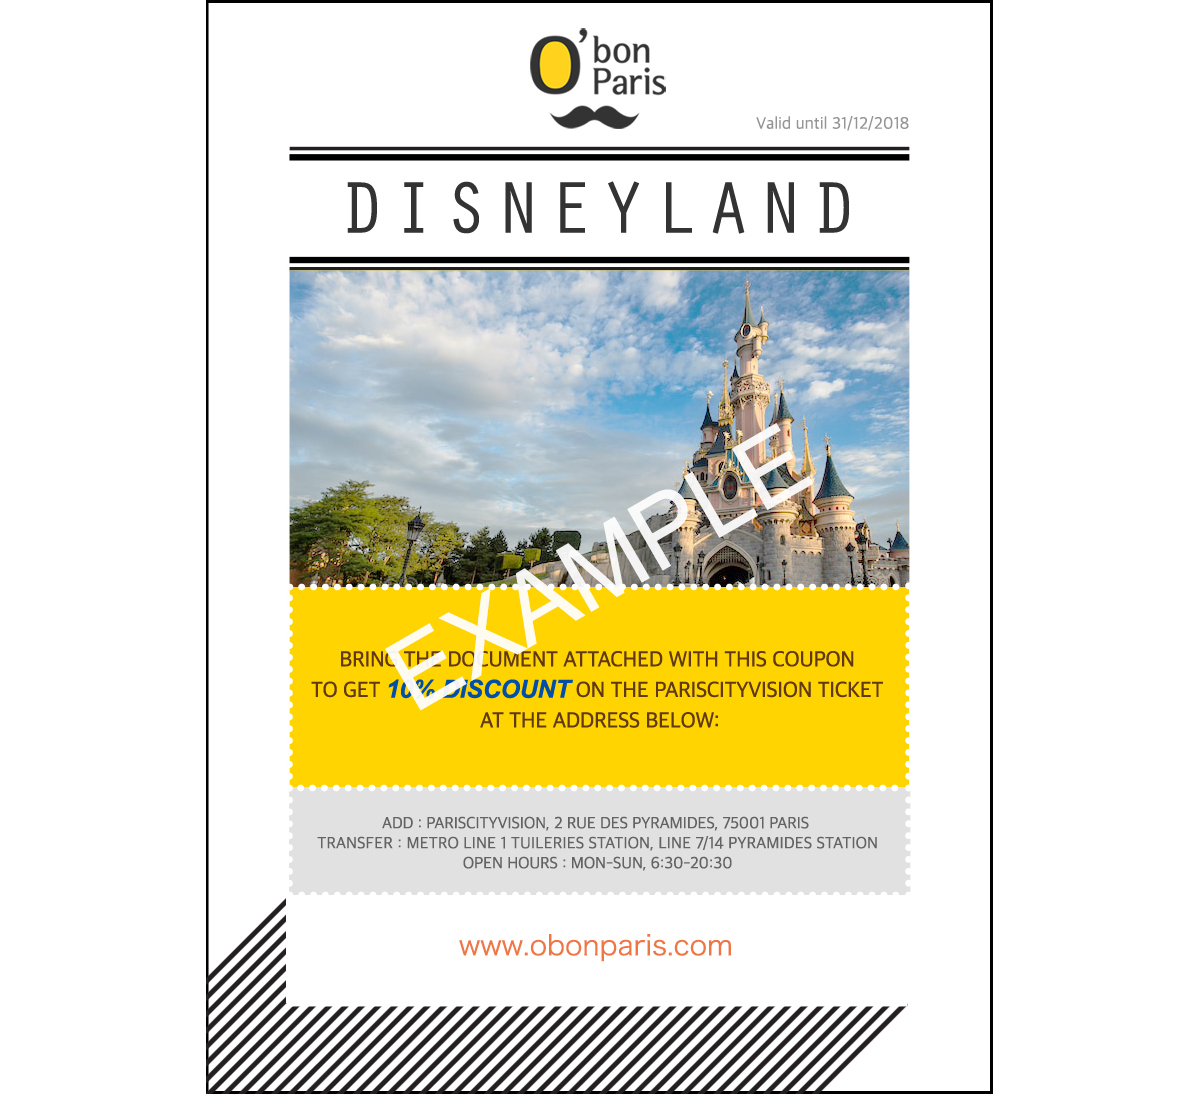 Disneyland coupons and discounts 2018